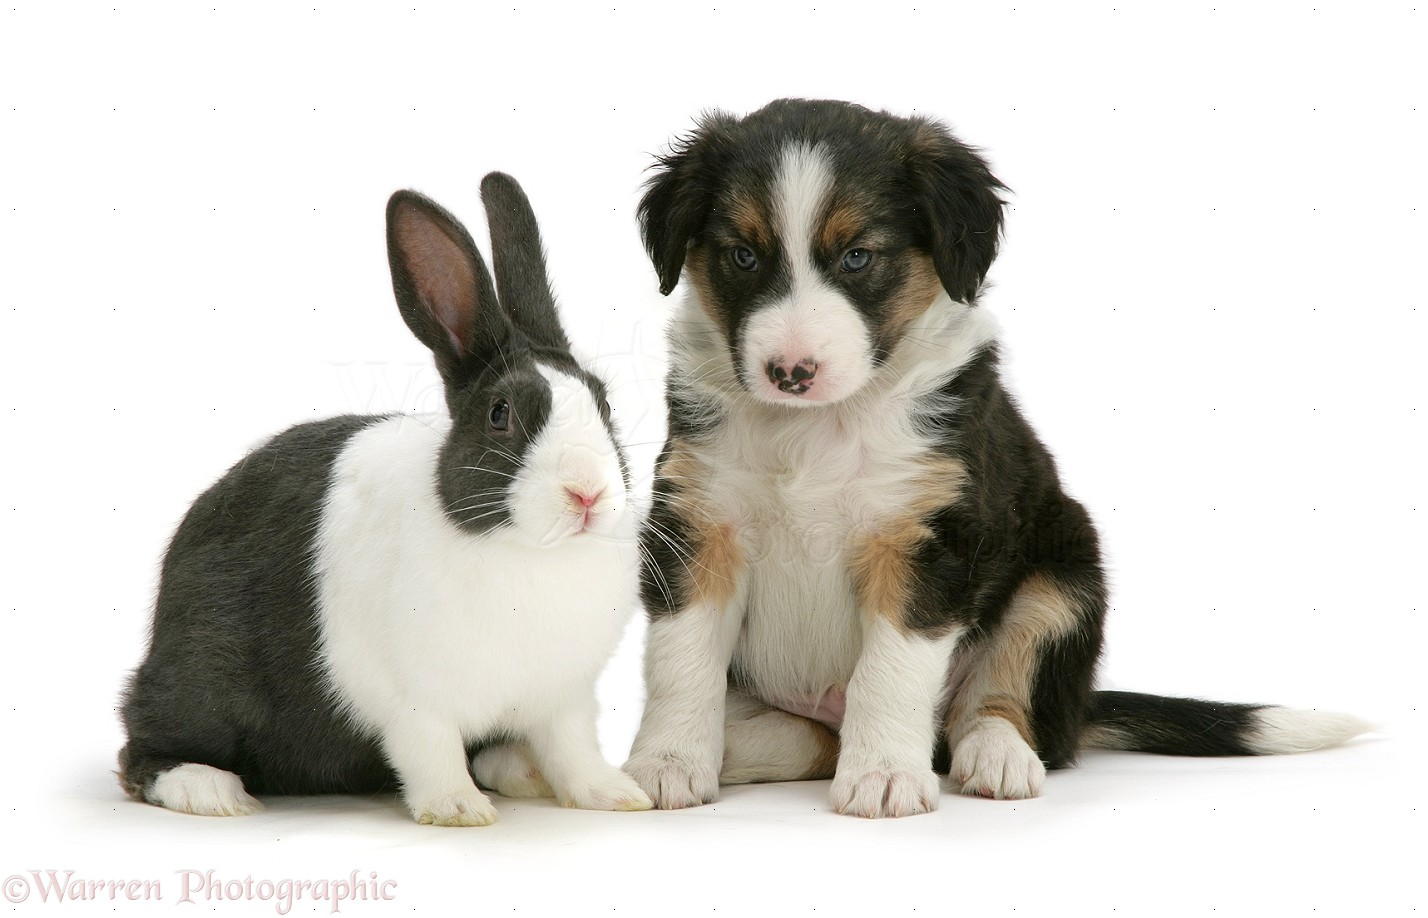 Tricolour Border Collie pup with blue Dutch rabbit photo - WP13555